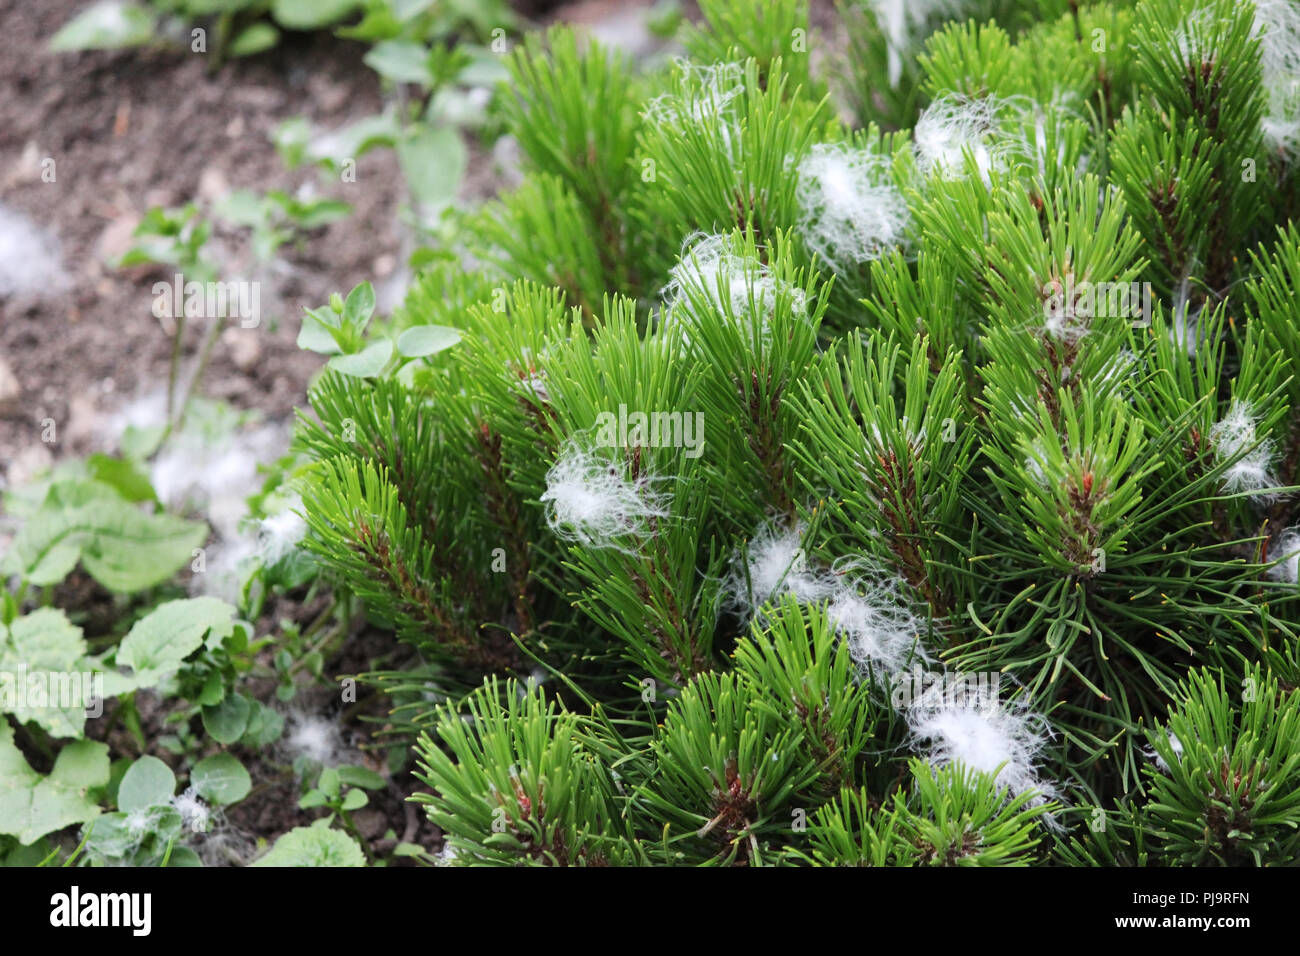 artificial snow in the form of fluff, sprayed from the gun during the shooting of the film and stuck in a young pine tree - Stock Image